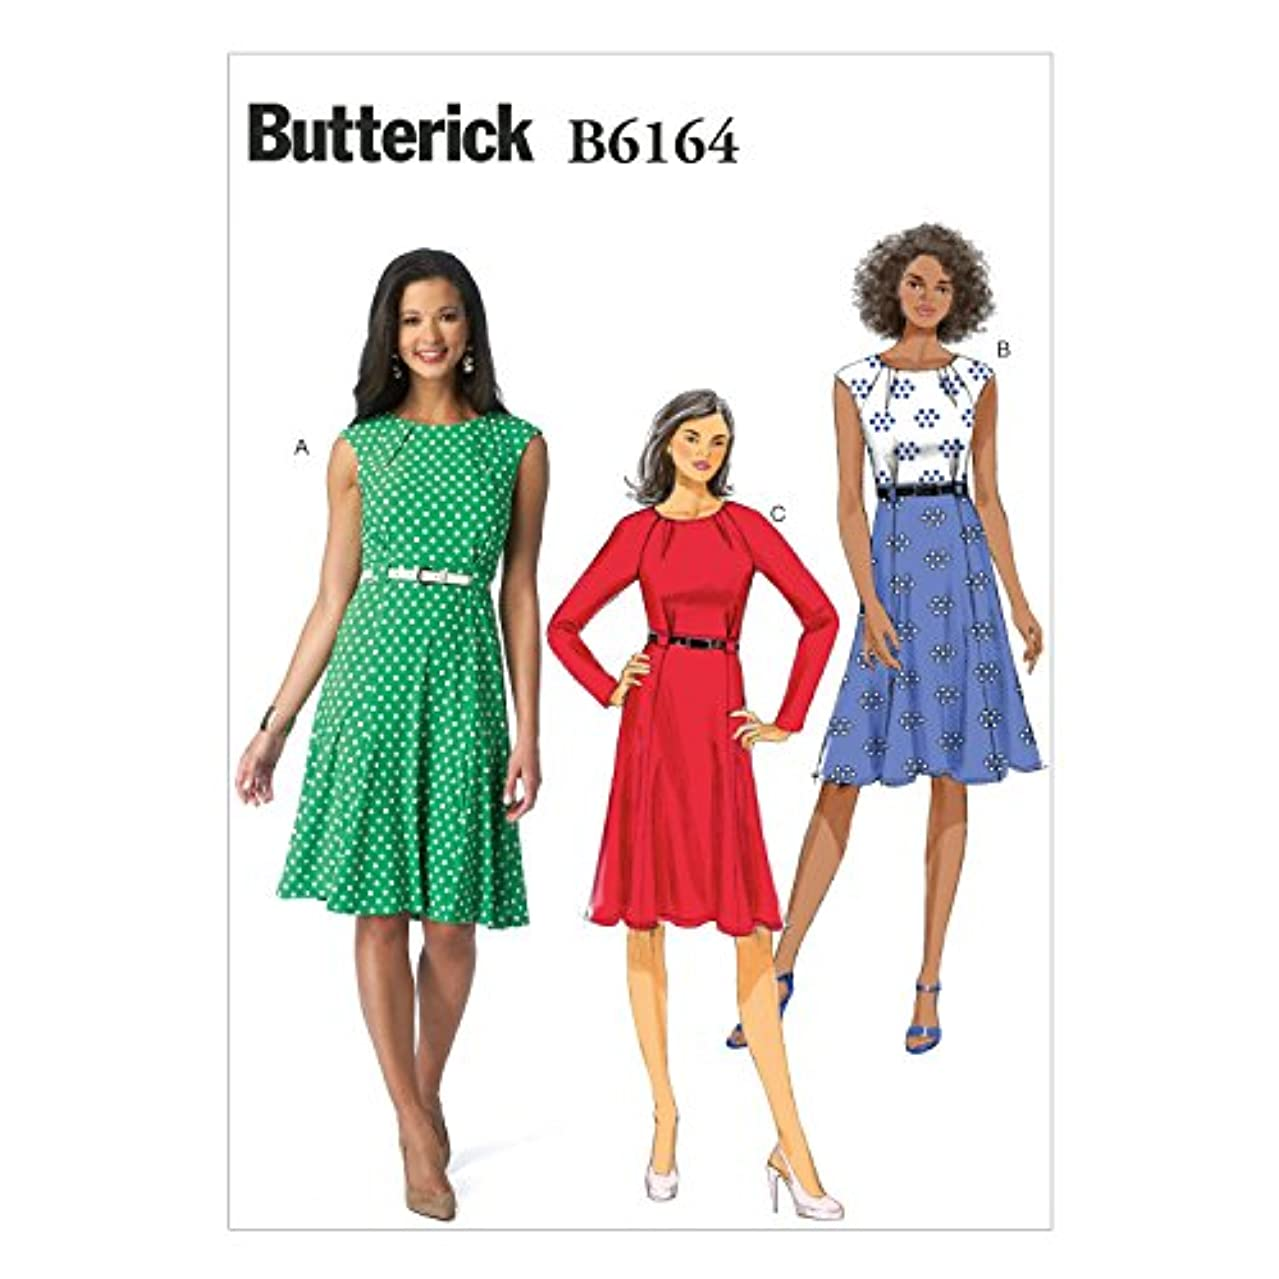 BUTTERICK PATTERNS B6164A50 Misses' Dress Sewing Template, A5 (6-8-10-12-14)